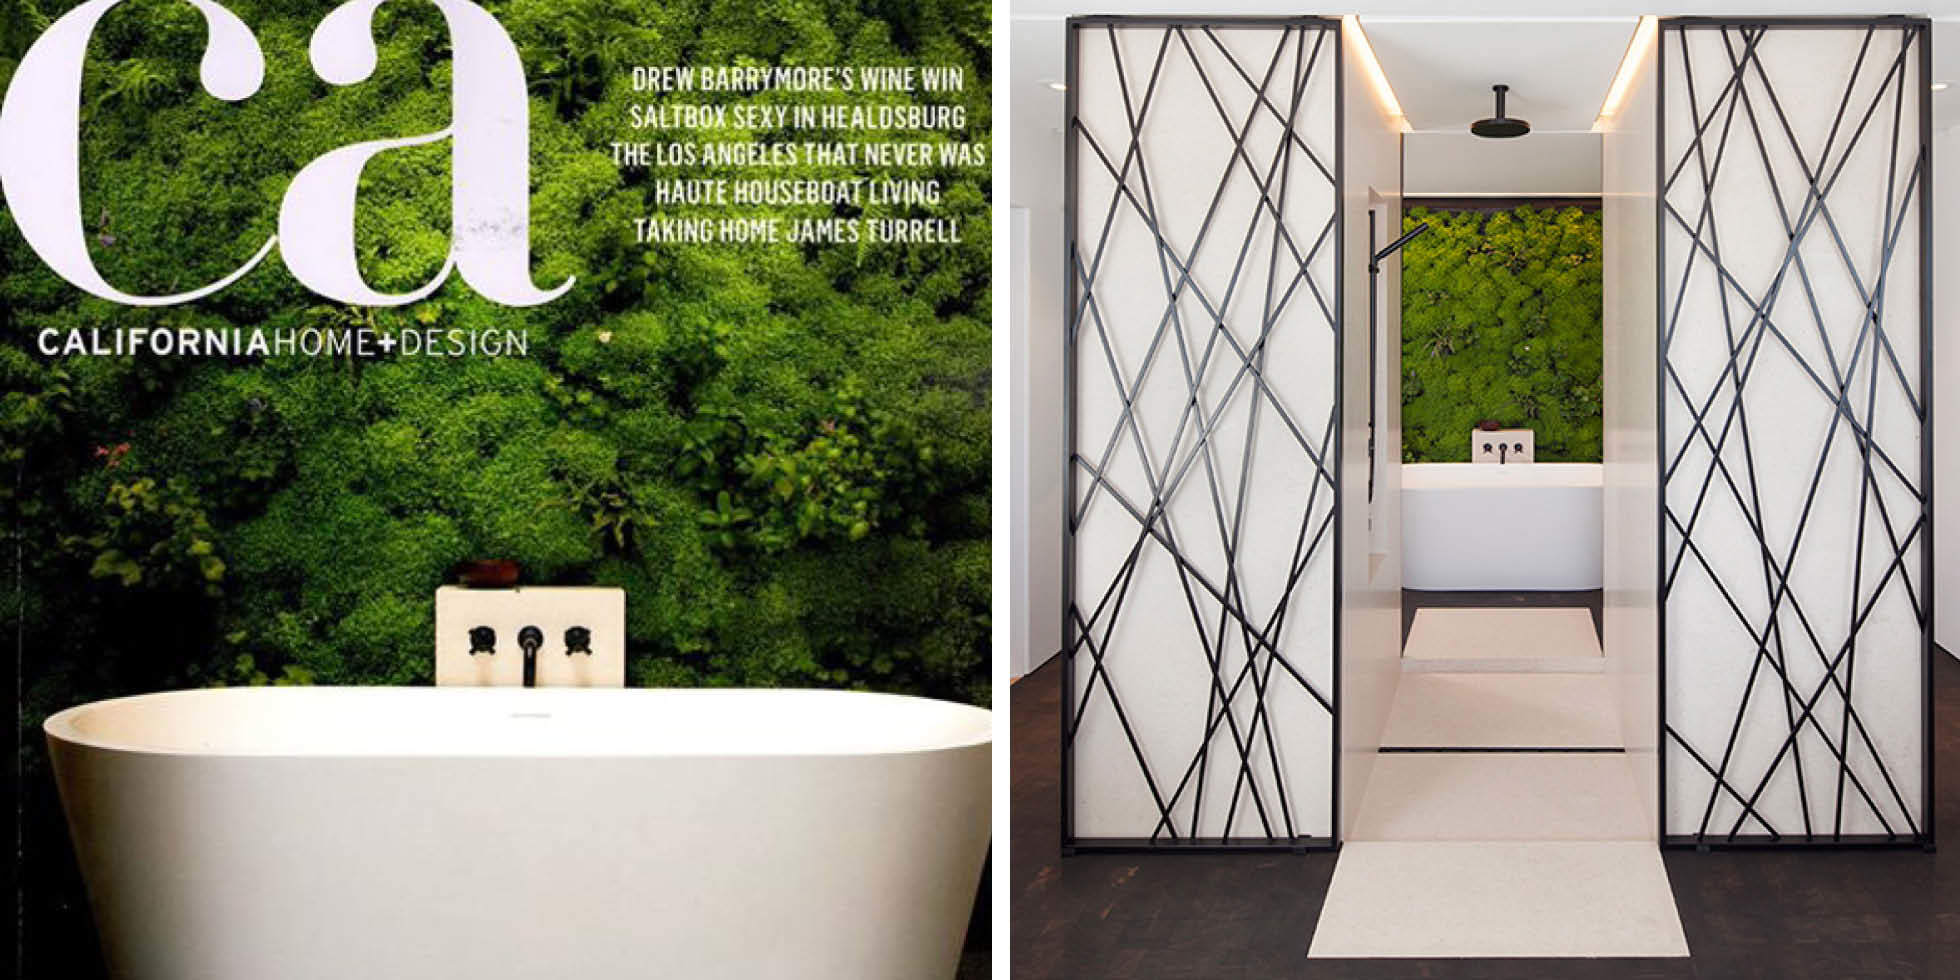 Zen Bathroom Escape Living Wall by Habitat Horticulture - View 2